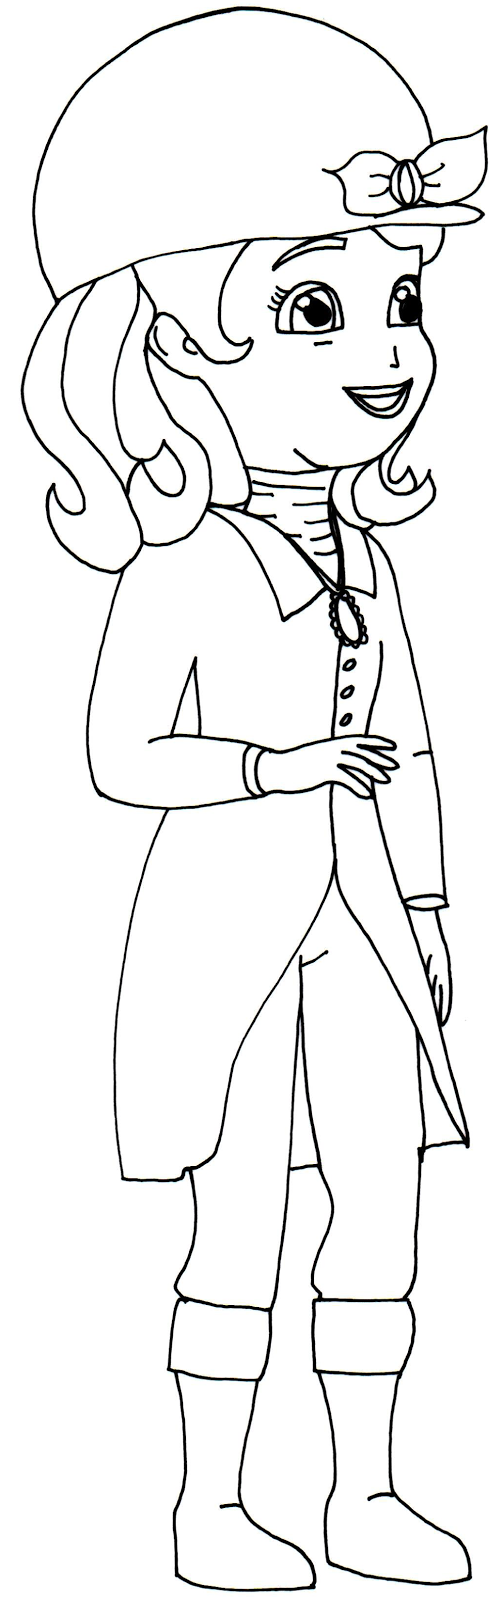 coloring pages sofia the first - sofia the first coloring pages just one of the princes